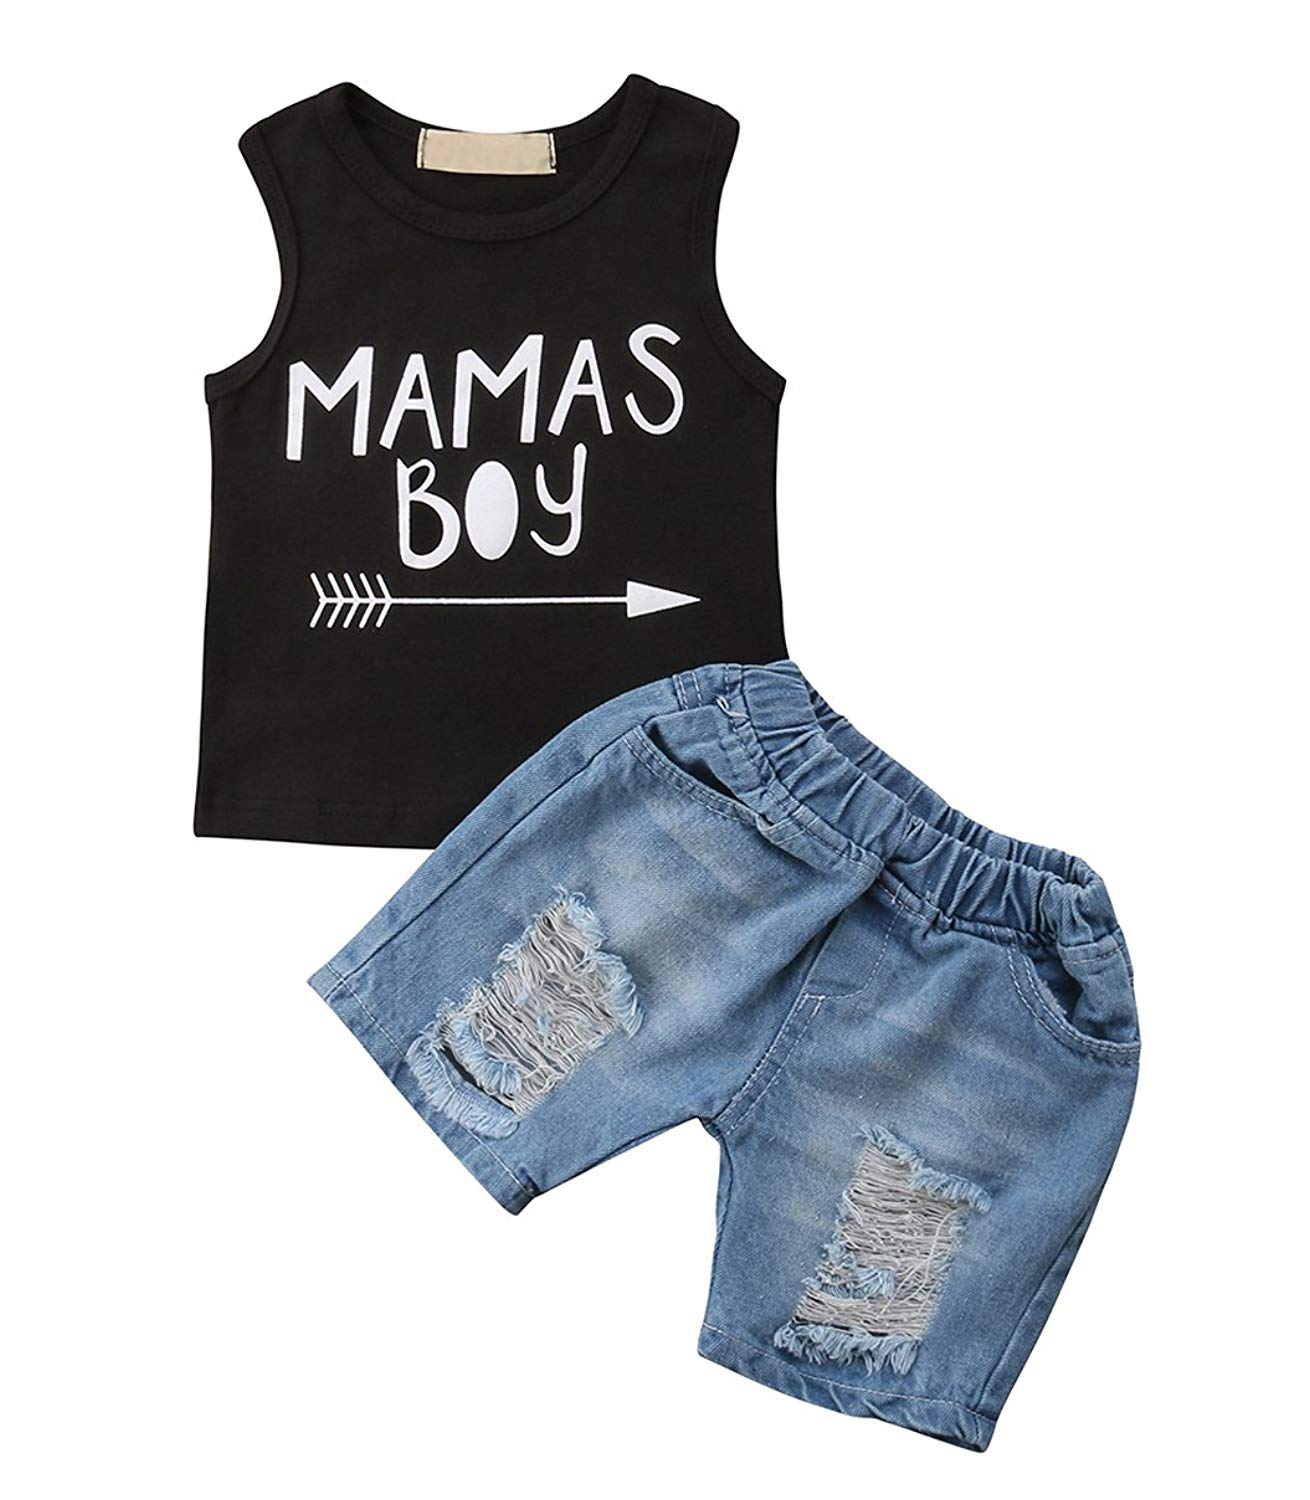 91e99a55 Get Quotations · MUNIMINI Mama's Boy Toddler Boys Sleeveless Tank Vest Top  and Ripped Jeans Short Outfit